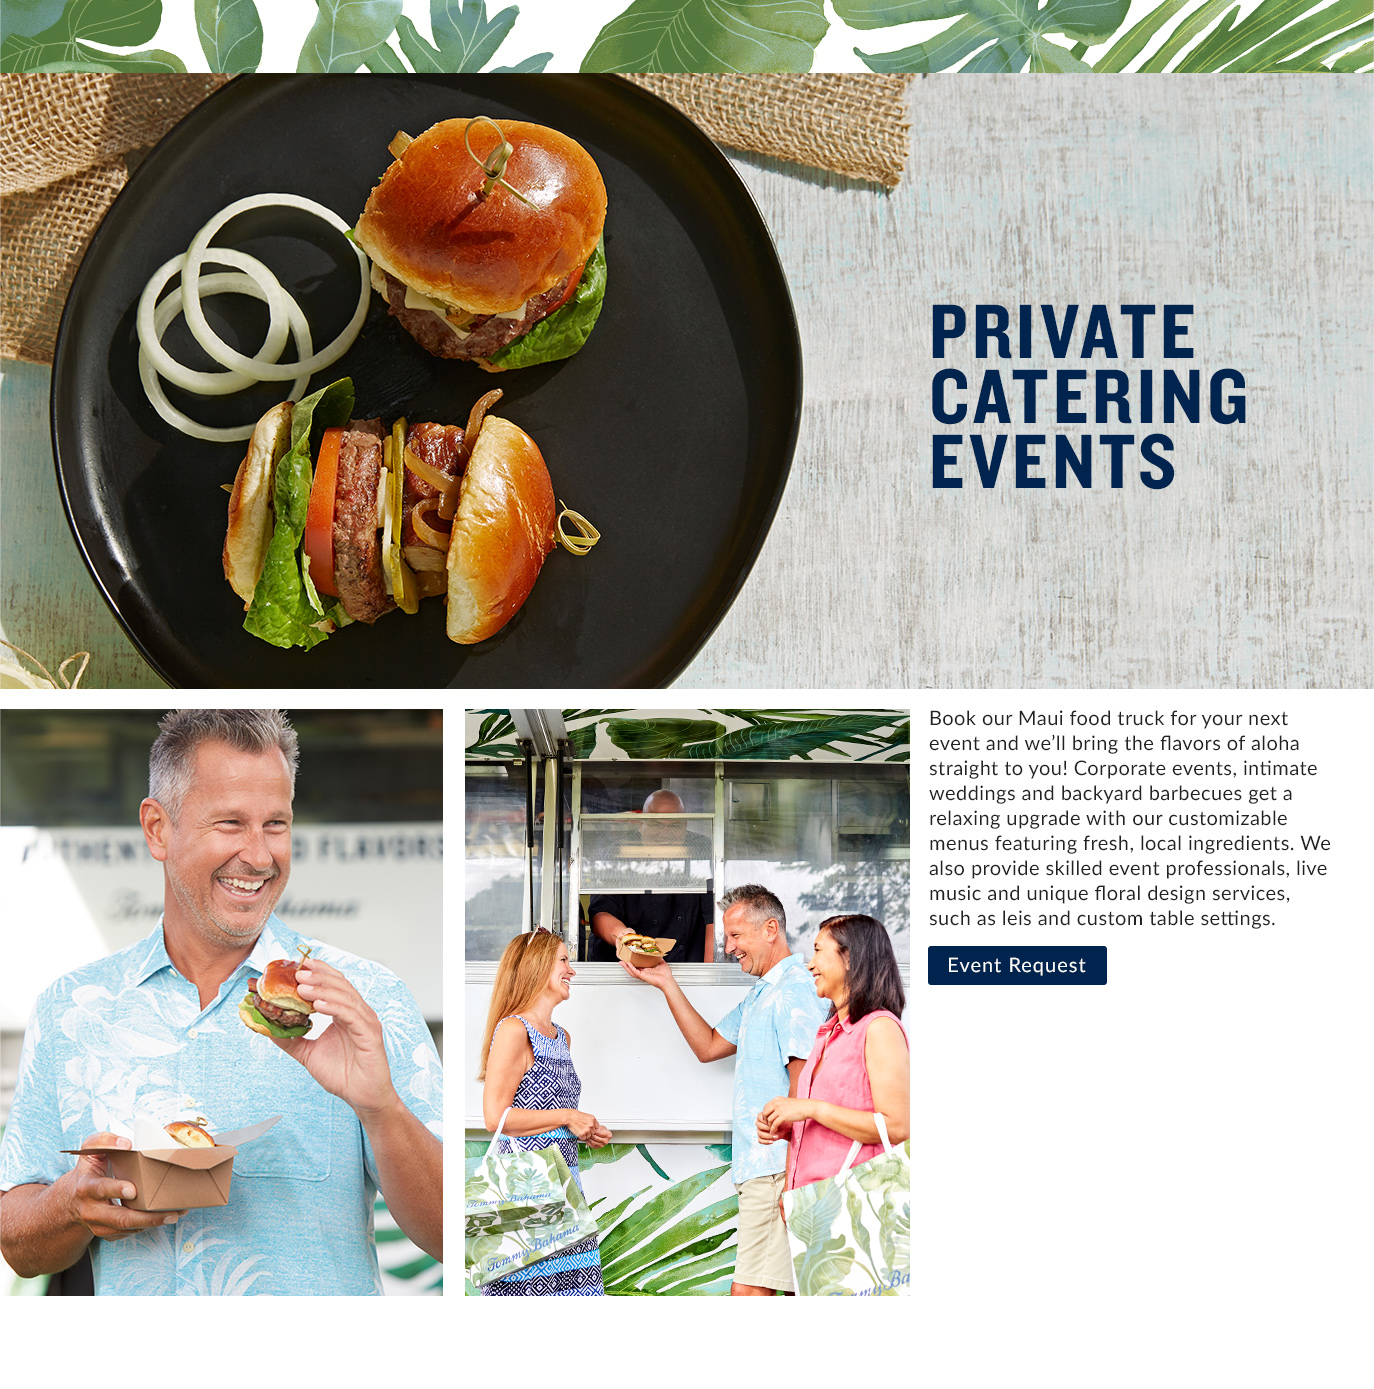 Tommy bahama stores restaurants maui food truck international locations forumfinder Image collections